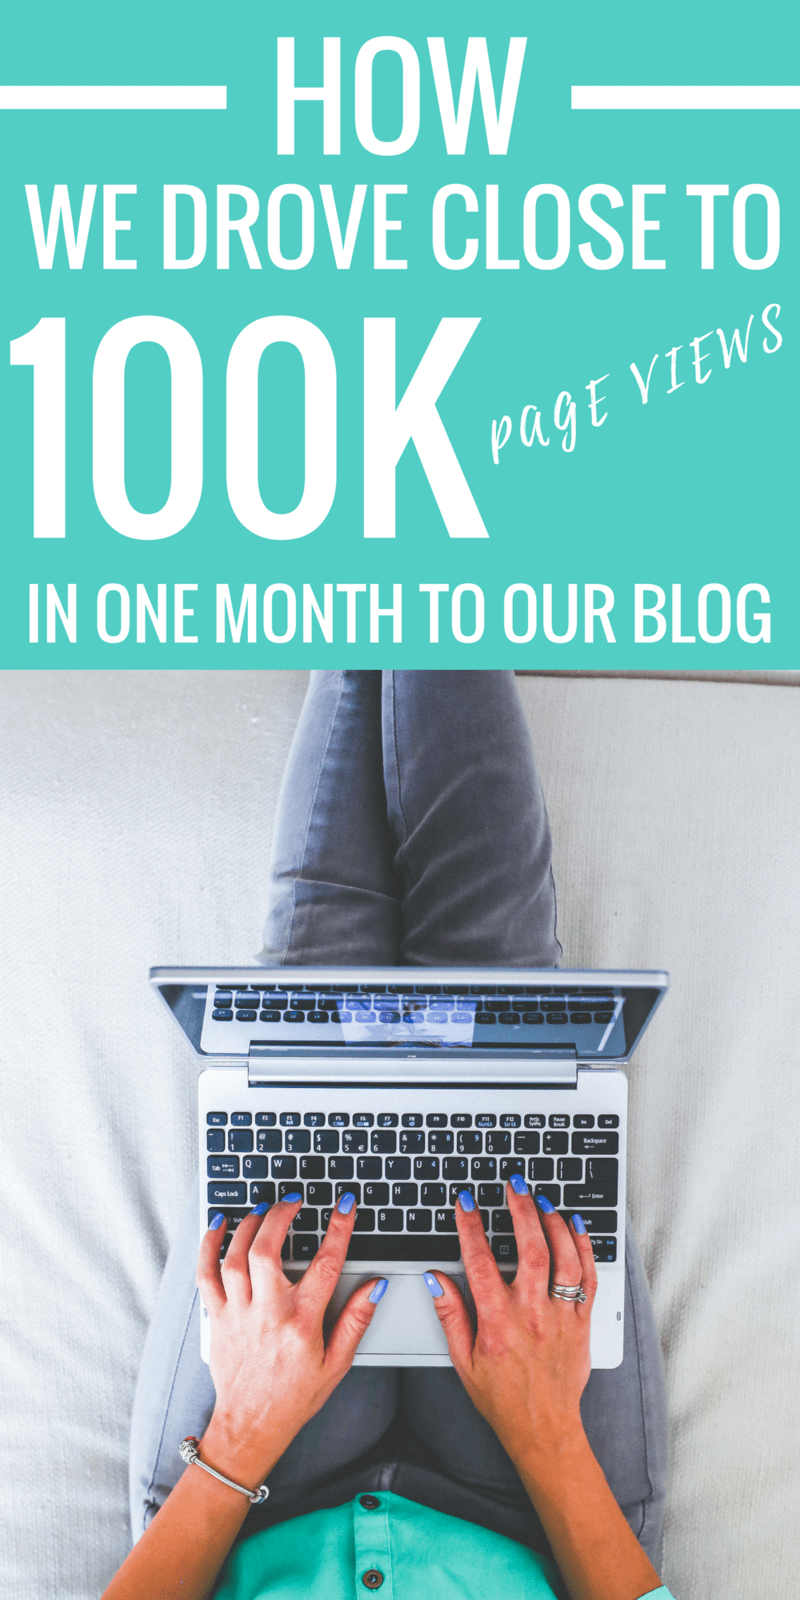 Wow, this is AMAZING how this person quit their job to blog full-time. It's inspiring to see that others can make a living from home and live the life they want. Really excited to start my own blog and start making passive income. Pinning this! #Blogging #HowTo #IncomeReport #SideHustle